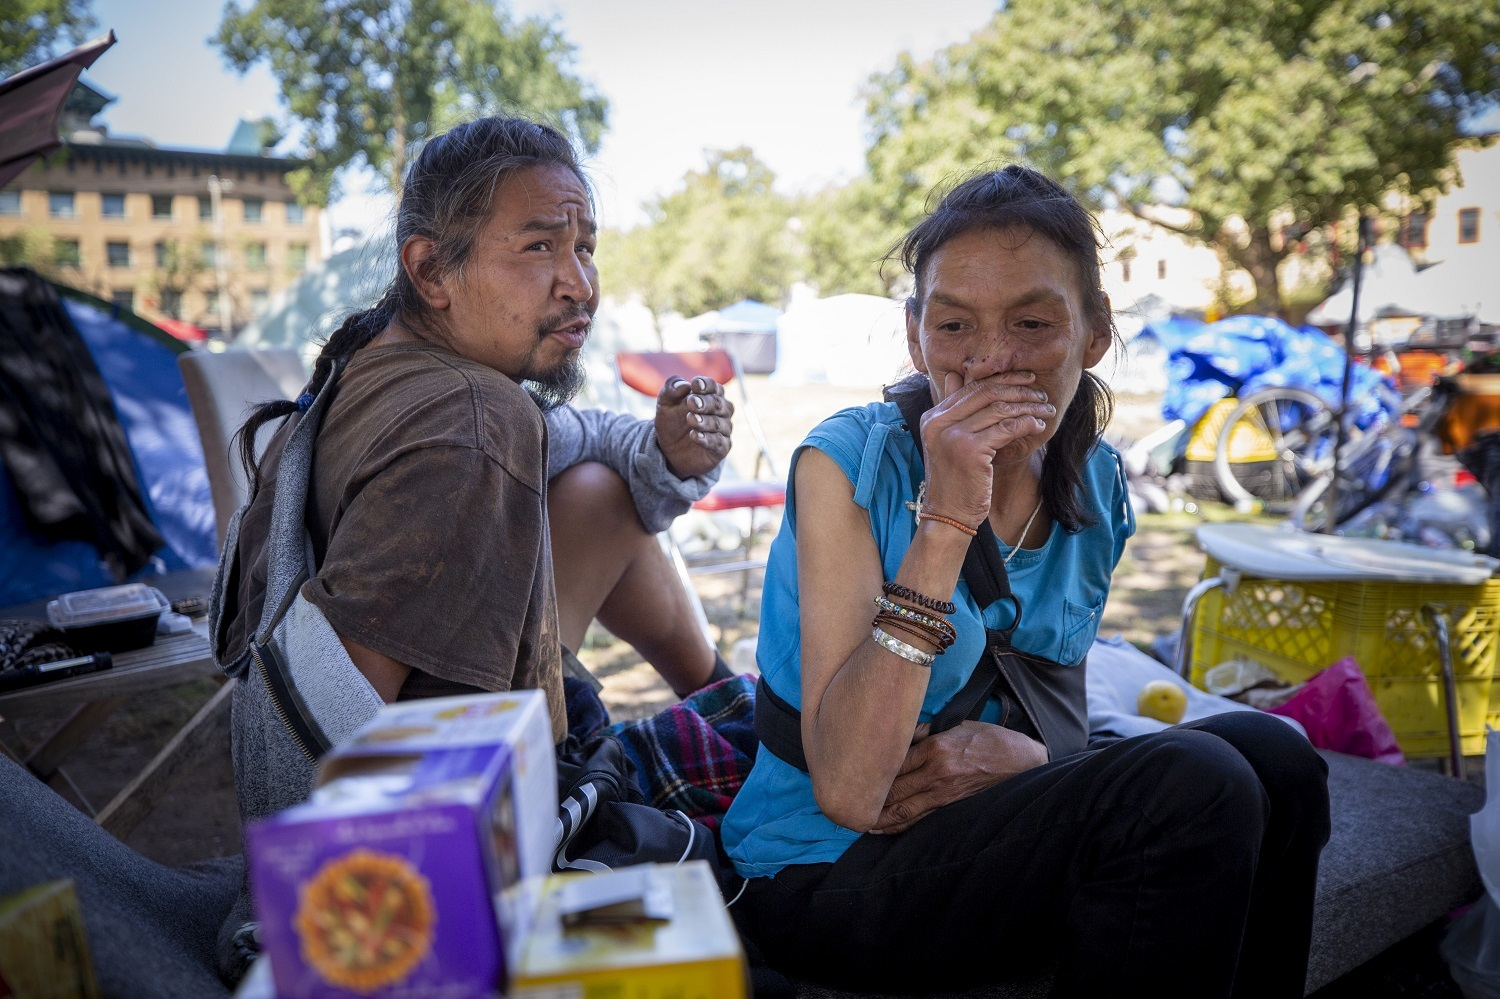 Oppenheimer Park residents in Vancouver, British Columbia on Friday, September 6, 2019. (Ben Nelms/CBC)